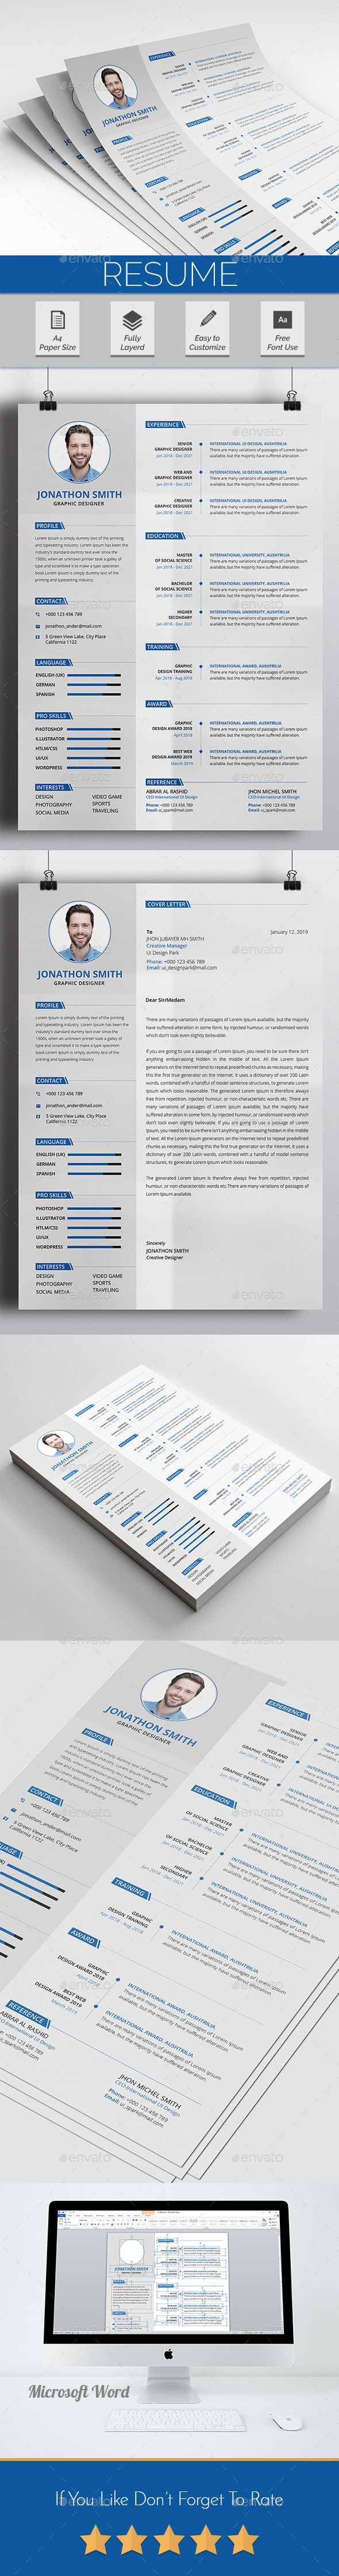 ms cover letter templates